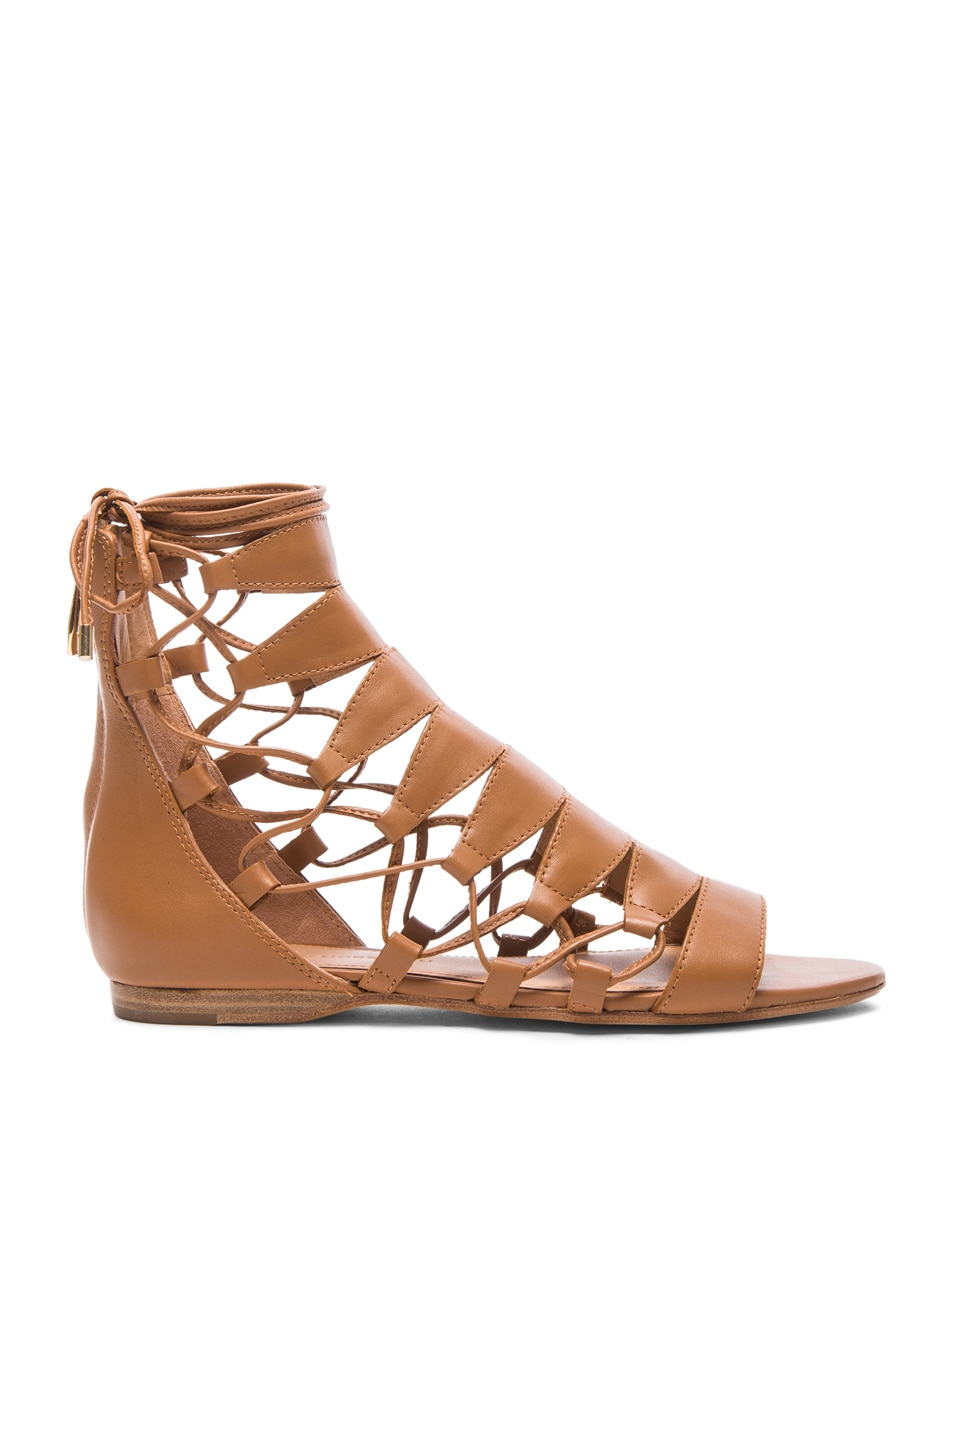 Image 1 of Sigerson Morrison Adal Lace Up Leather Sandals in Cuoio